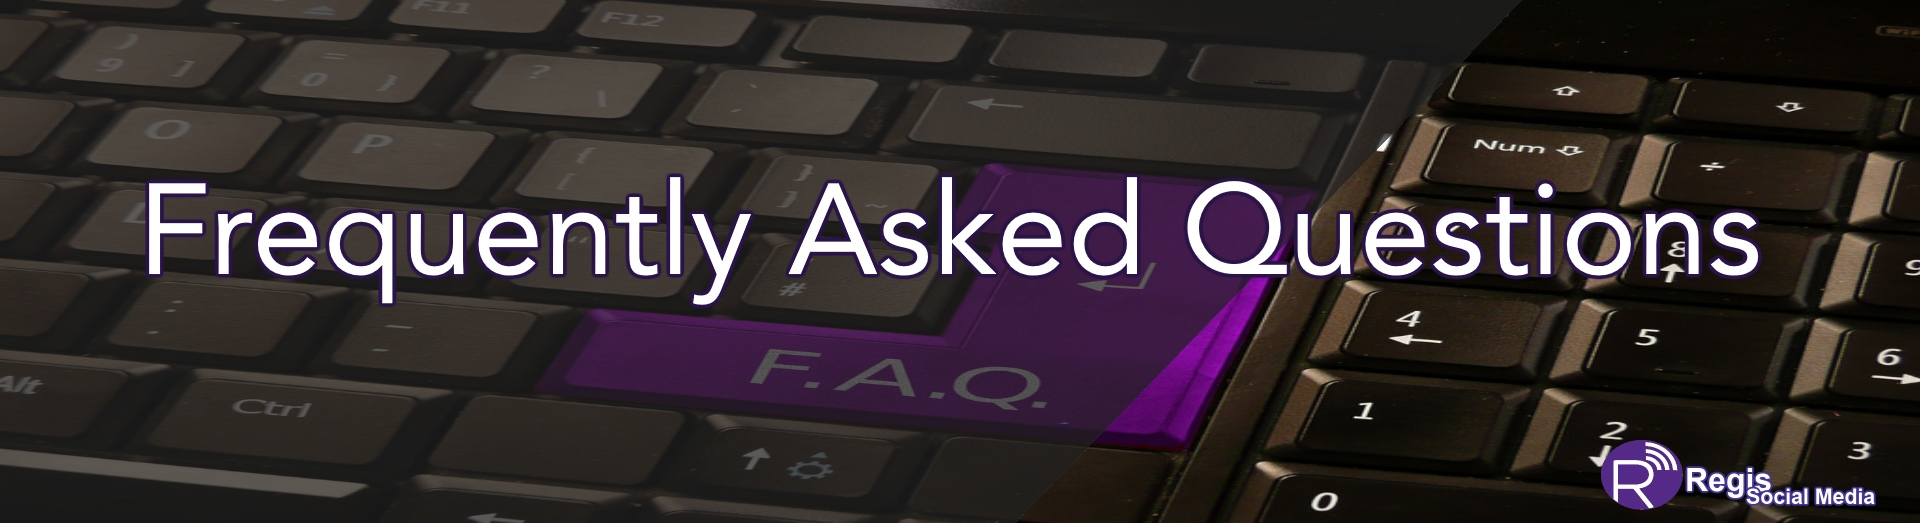 frequently-asked-social-media-seo-questions